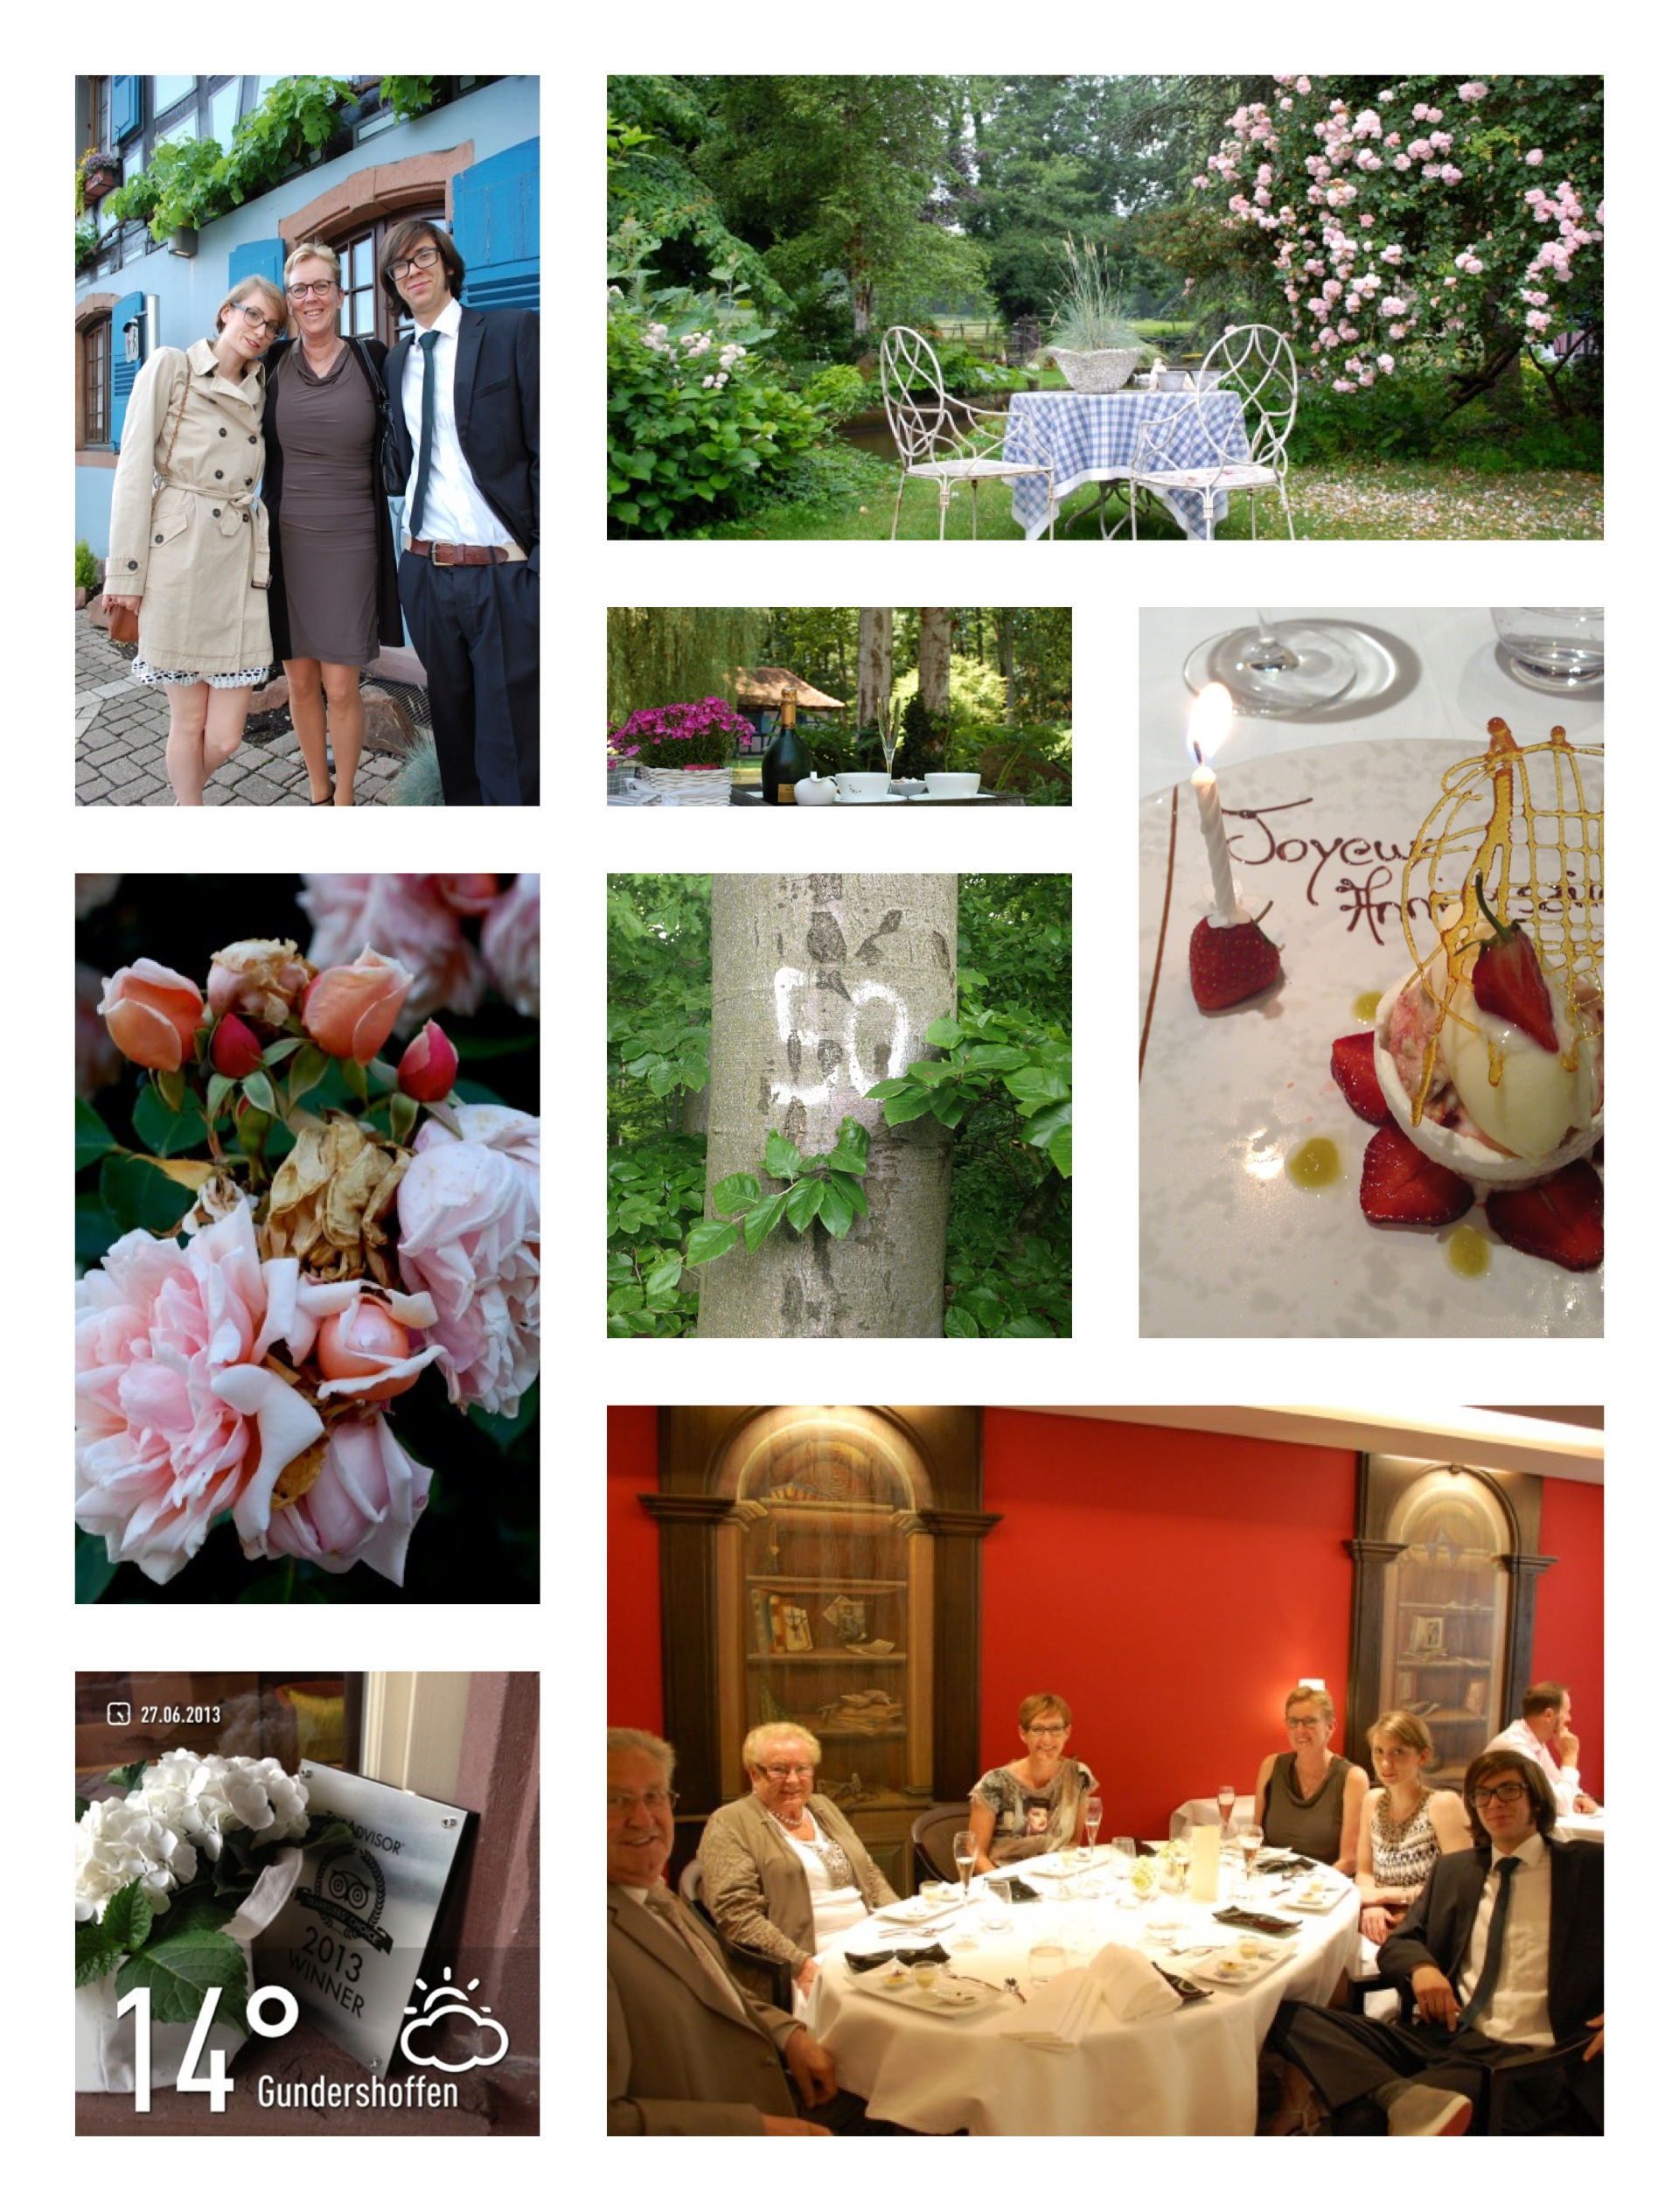 die besten foto apps folge 23 collagen mit frame magic frame artist photogrid und diptic. Black Bedroom Furniture Sets. Home Design Ideas